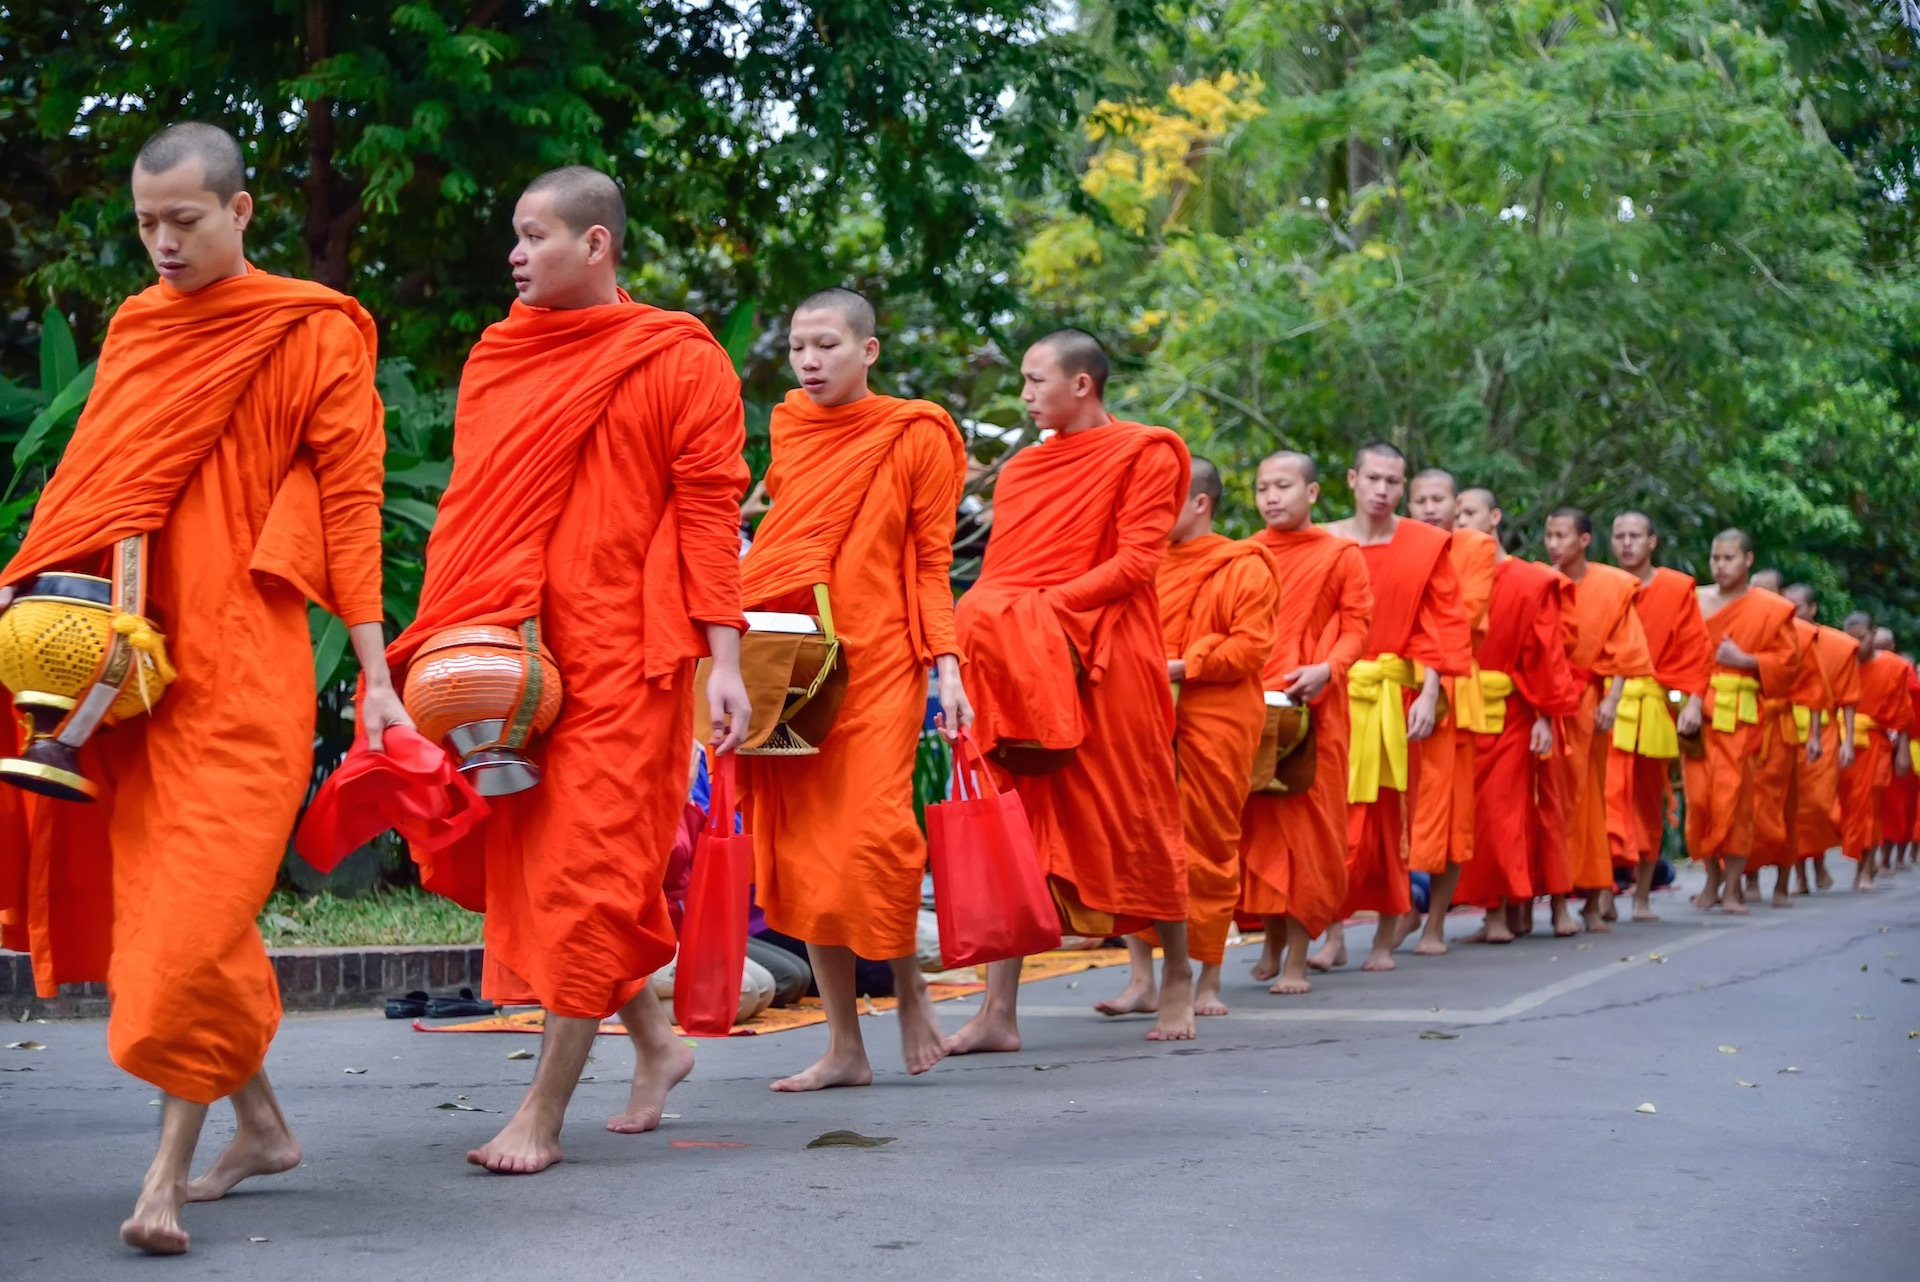 Why do Buddhist Monks wear Orange Robes and Shave their Heads?